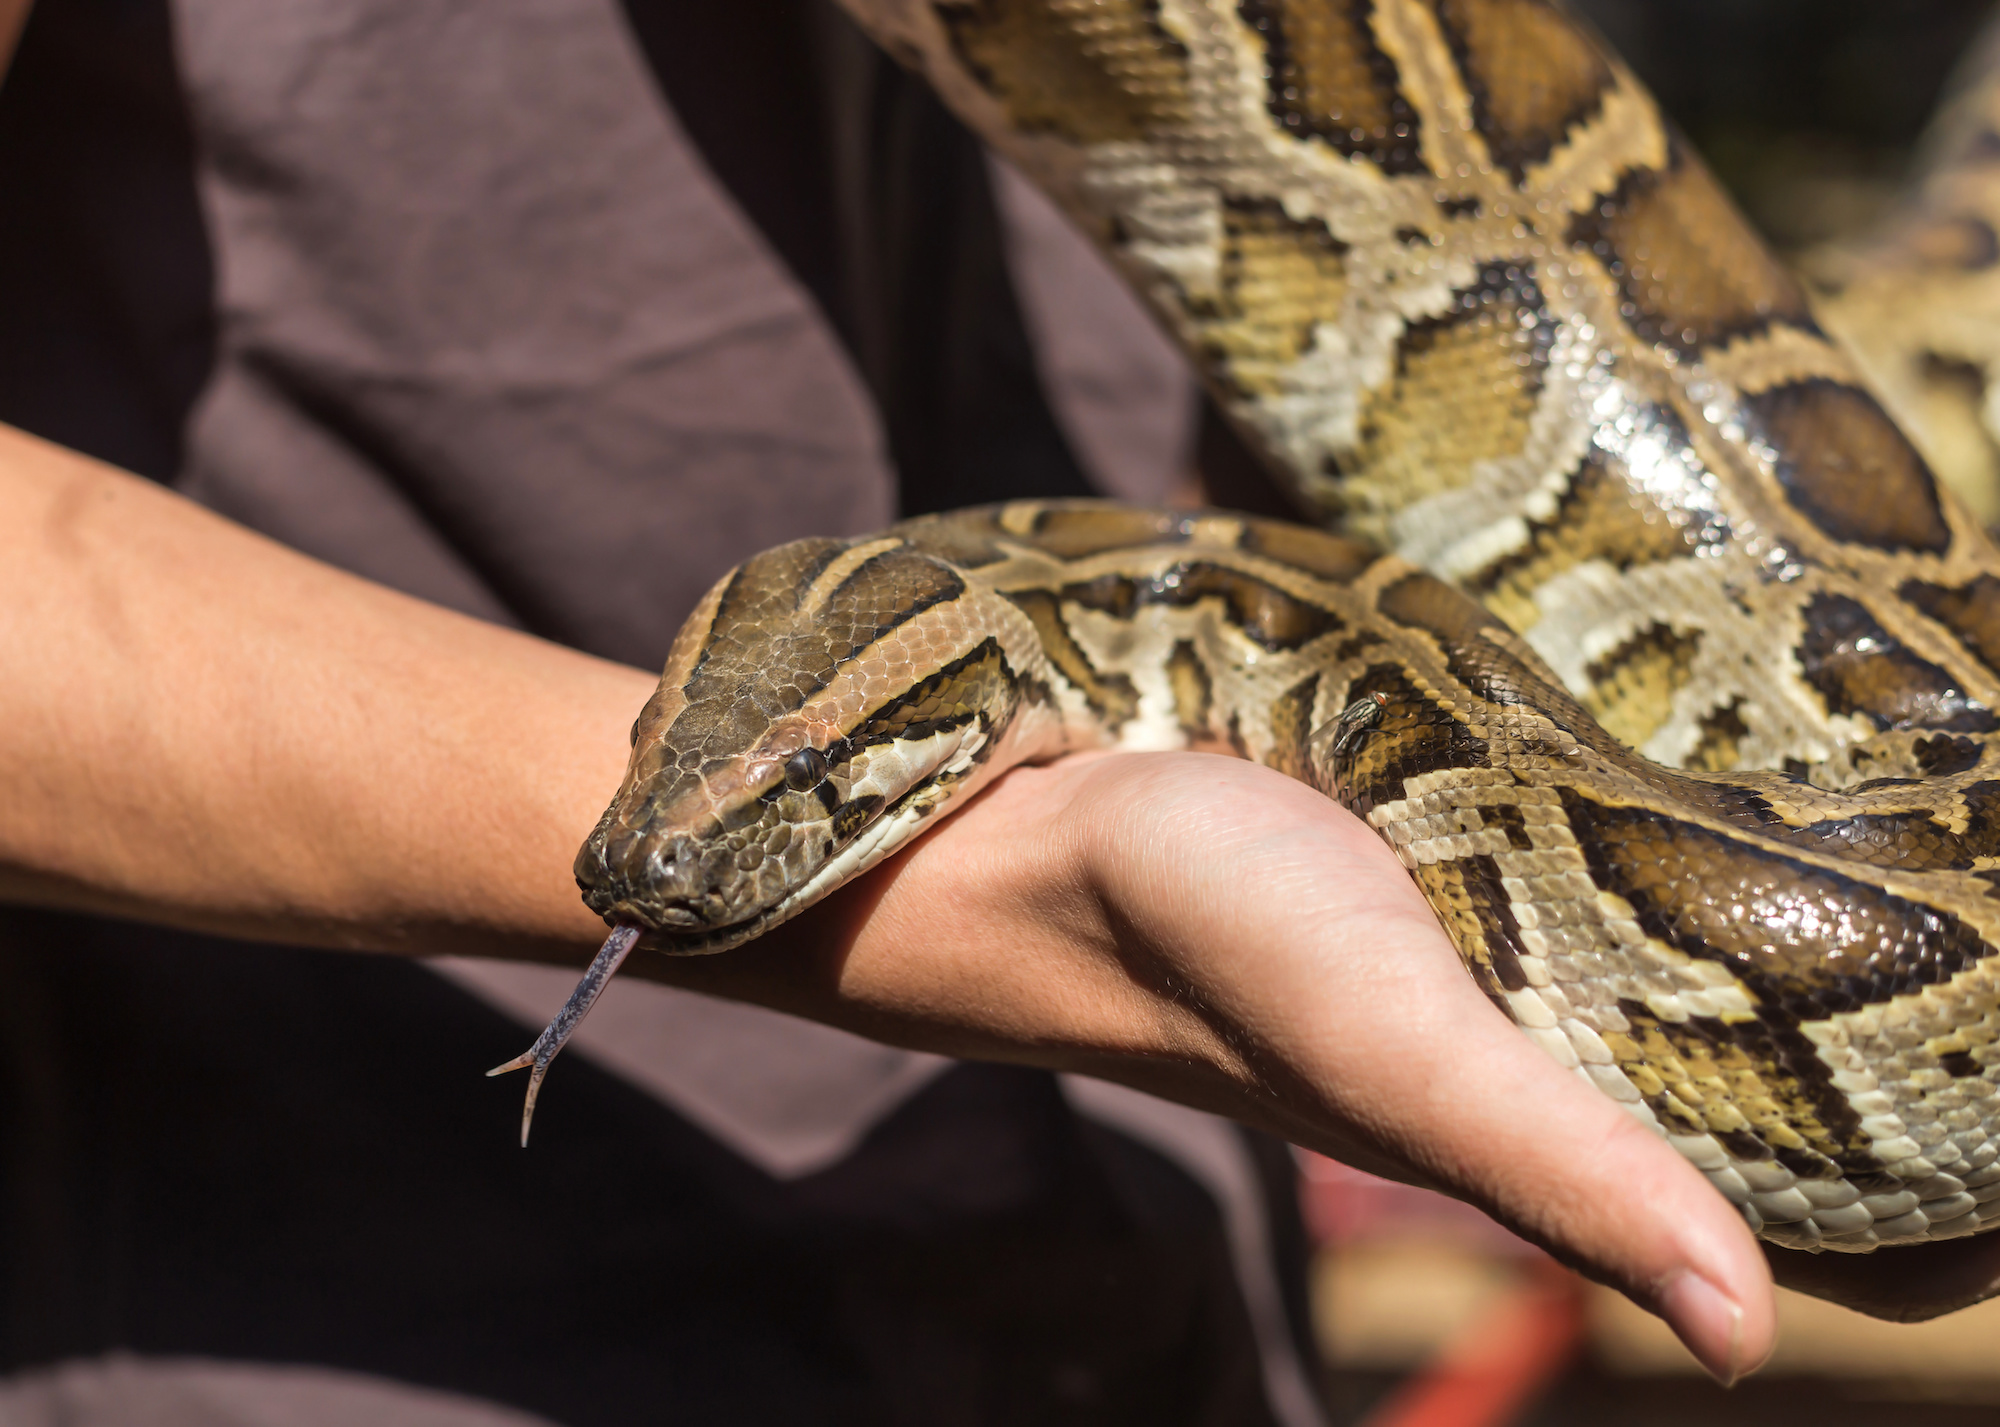 Burmese python,python molurus, python bivittatus let out tongue from the mouth in hand.